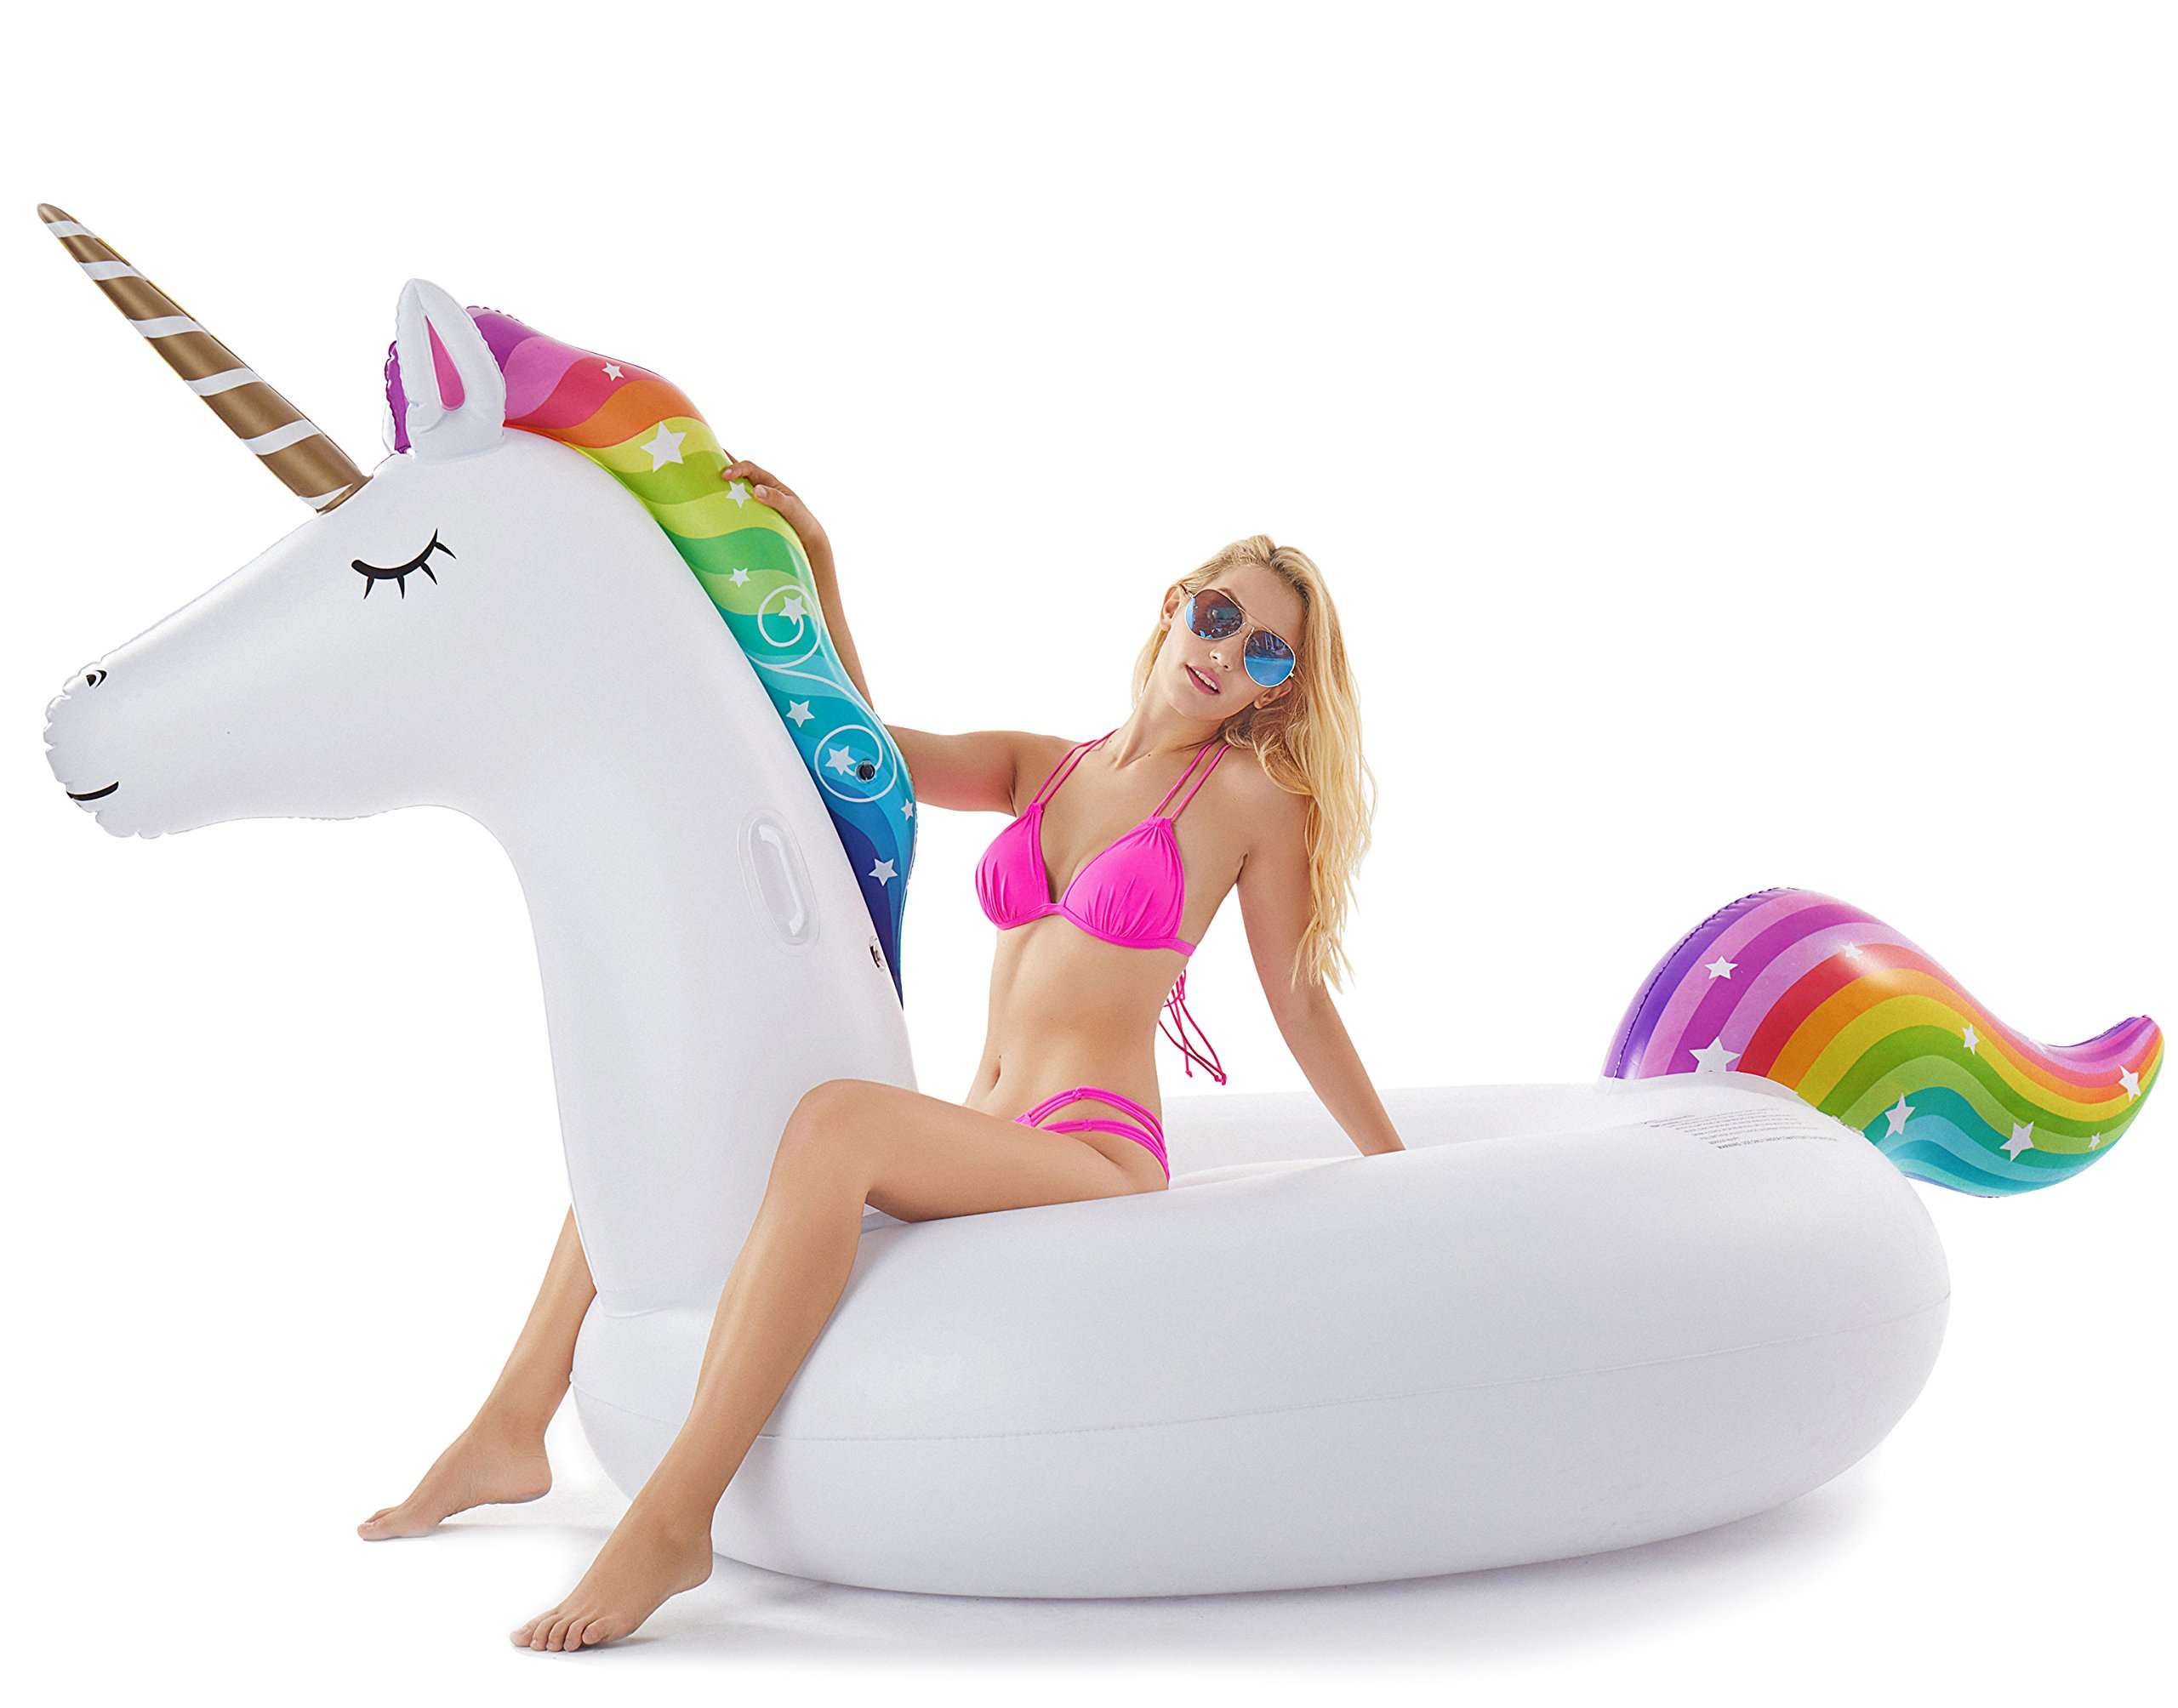 Jasonwell Giant Inflatable Unicorn Pool Float Floatie Ride On with Fast Valves Large Rideable Blow Up Summer Beach Swimming Pool Party Lounge Raft Decorations Toys Kids Adults by Jasonwell